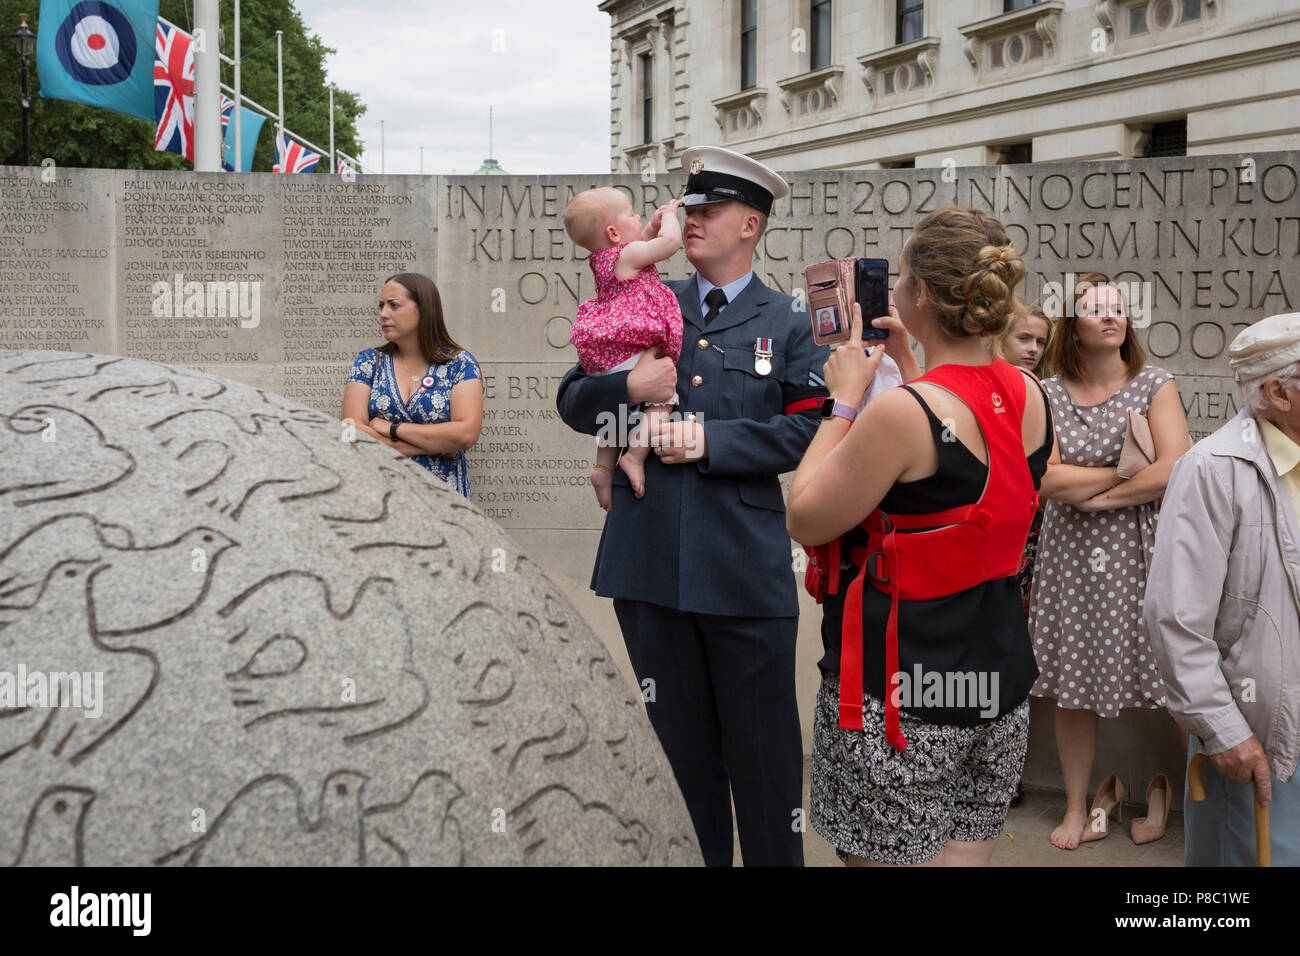 On the 100th anniversary of the Royal Air Force (RAF) and following a flypast of 100 aircraft formations representing Britain's air defence history which flew over central London, a serviceman holds his child next to the memorial to those killed in the 2002 Bali bombing, on 10th July 2018, in London, England. - Stock Image